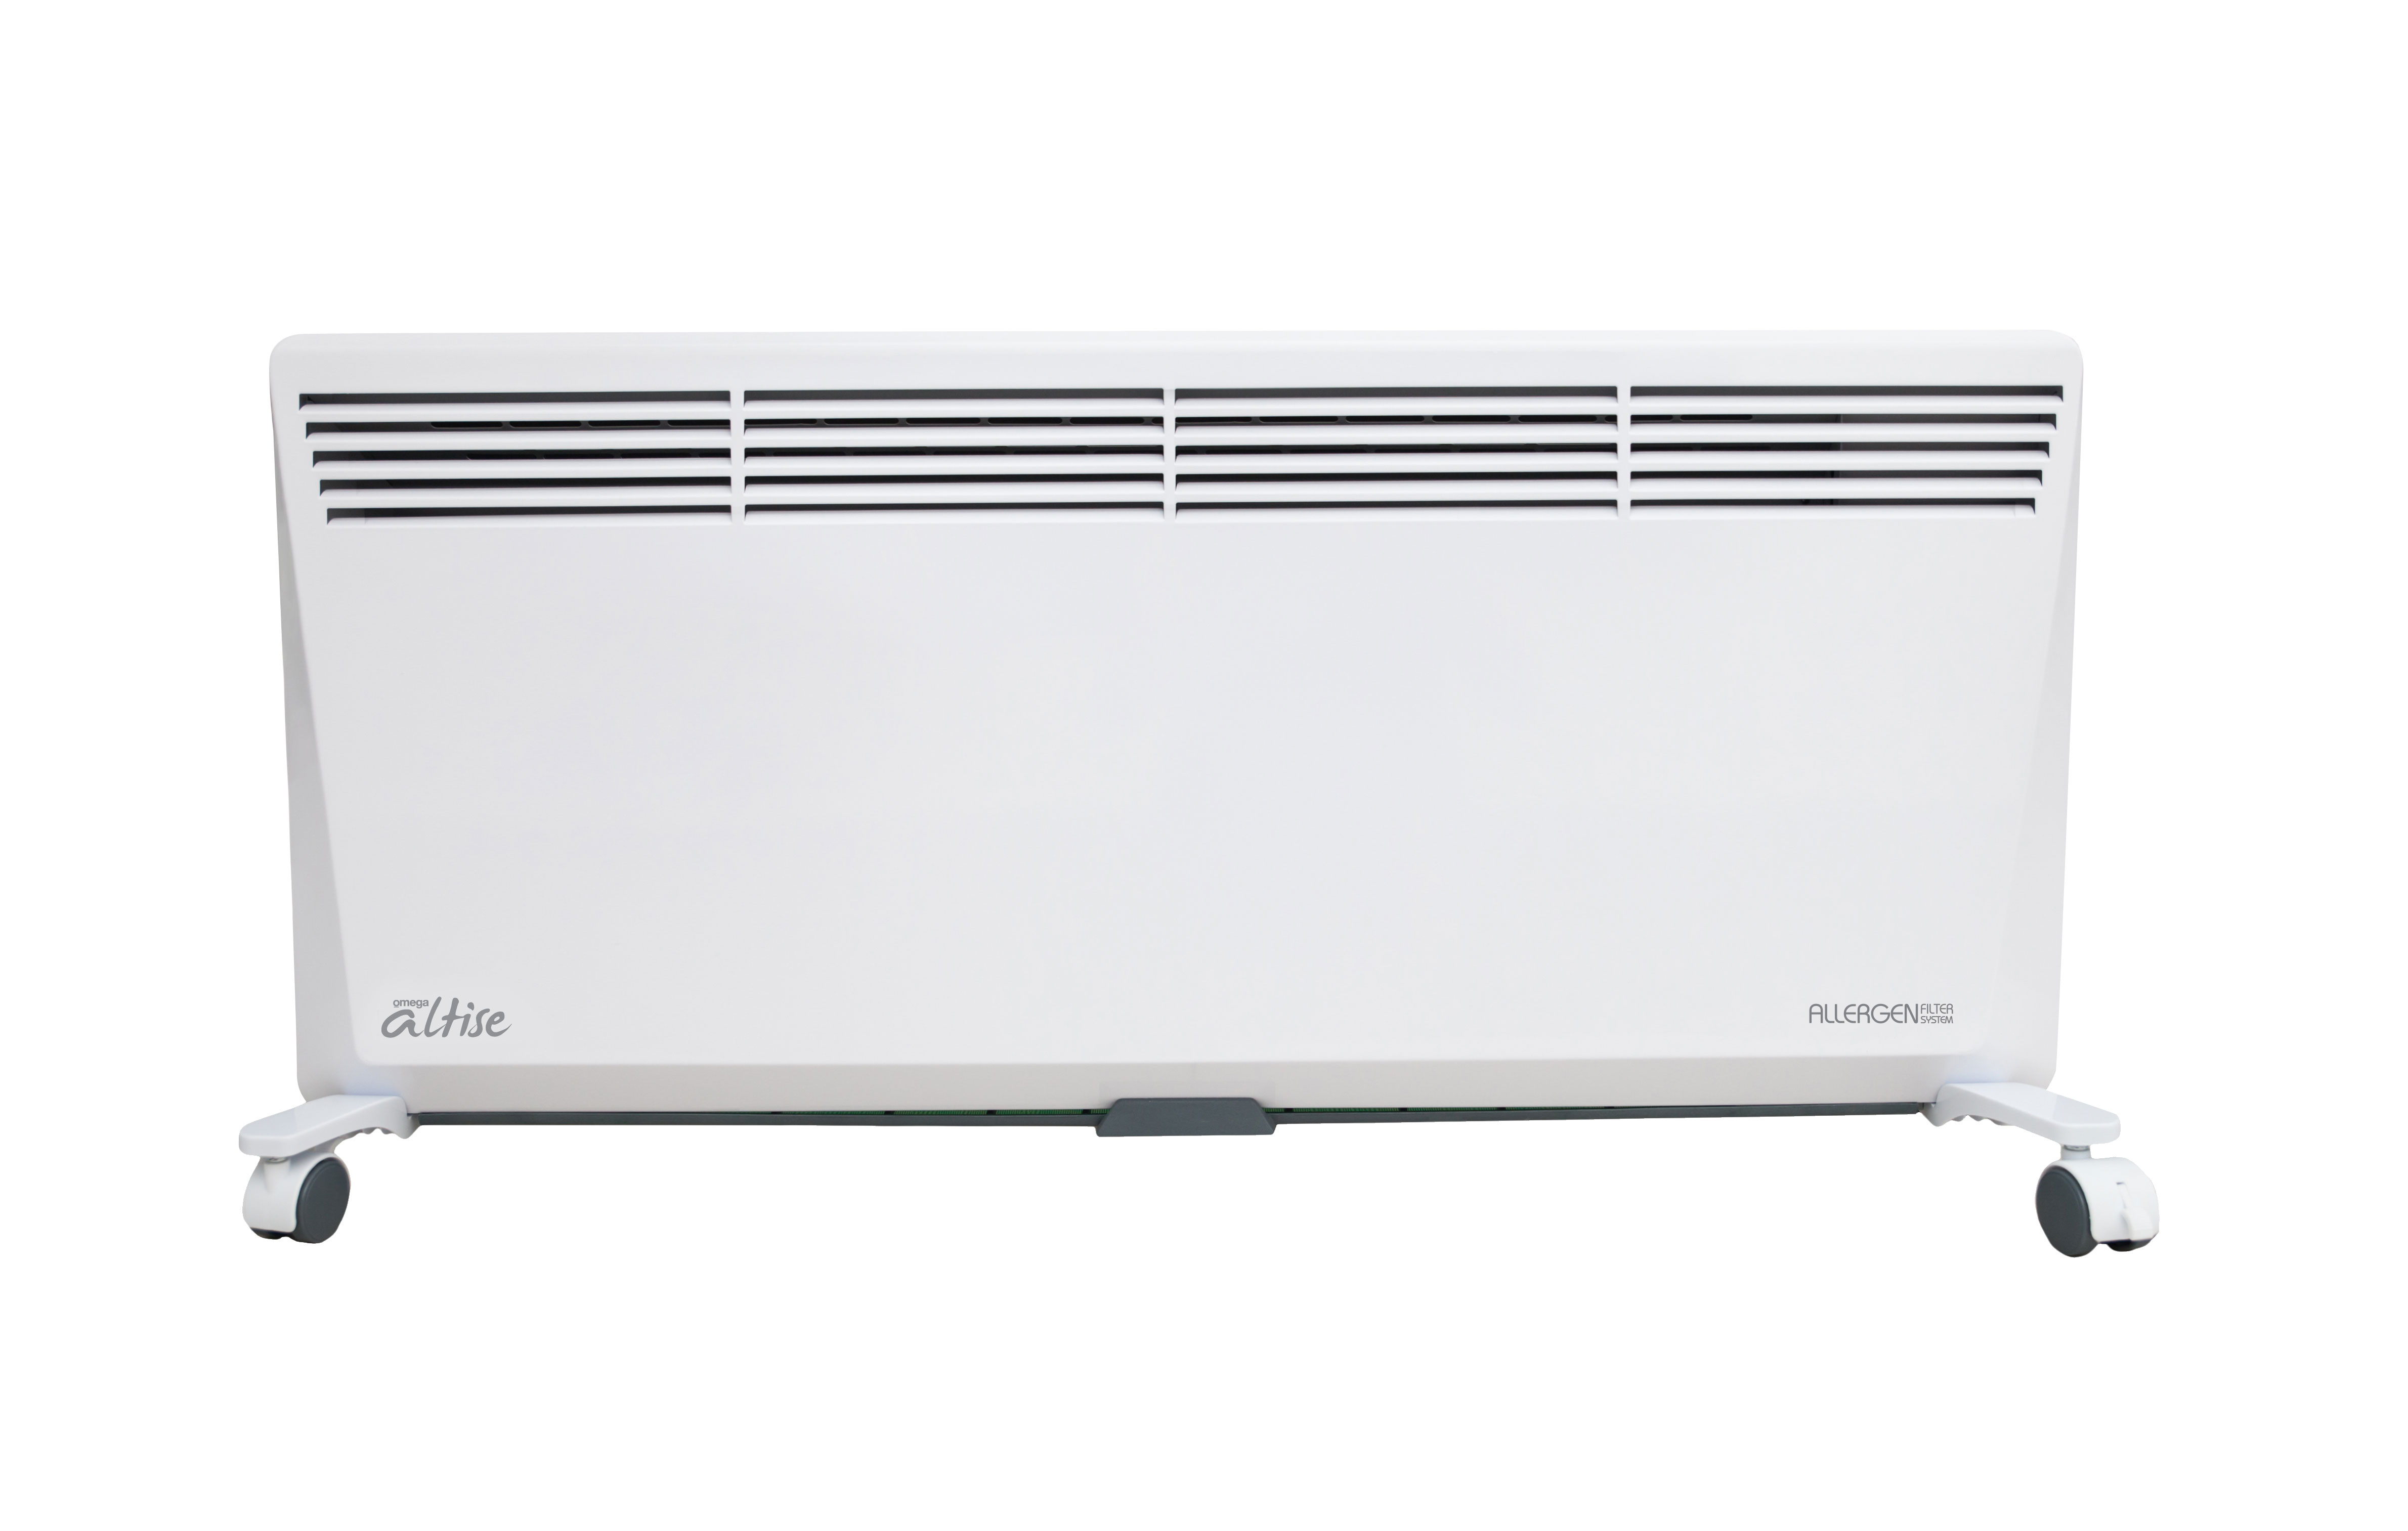 Omega Altise Product Panel Heater - With Filter2400W(ANPE2400W)